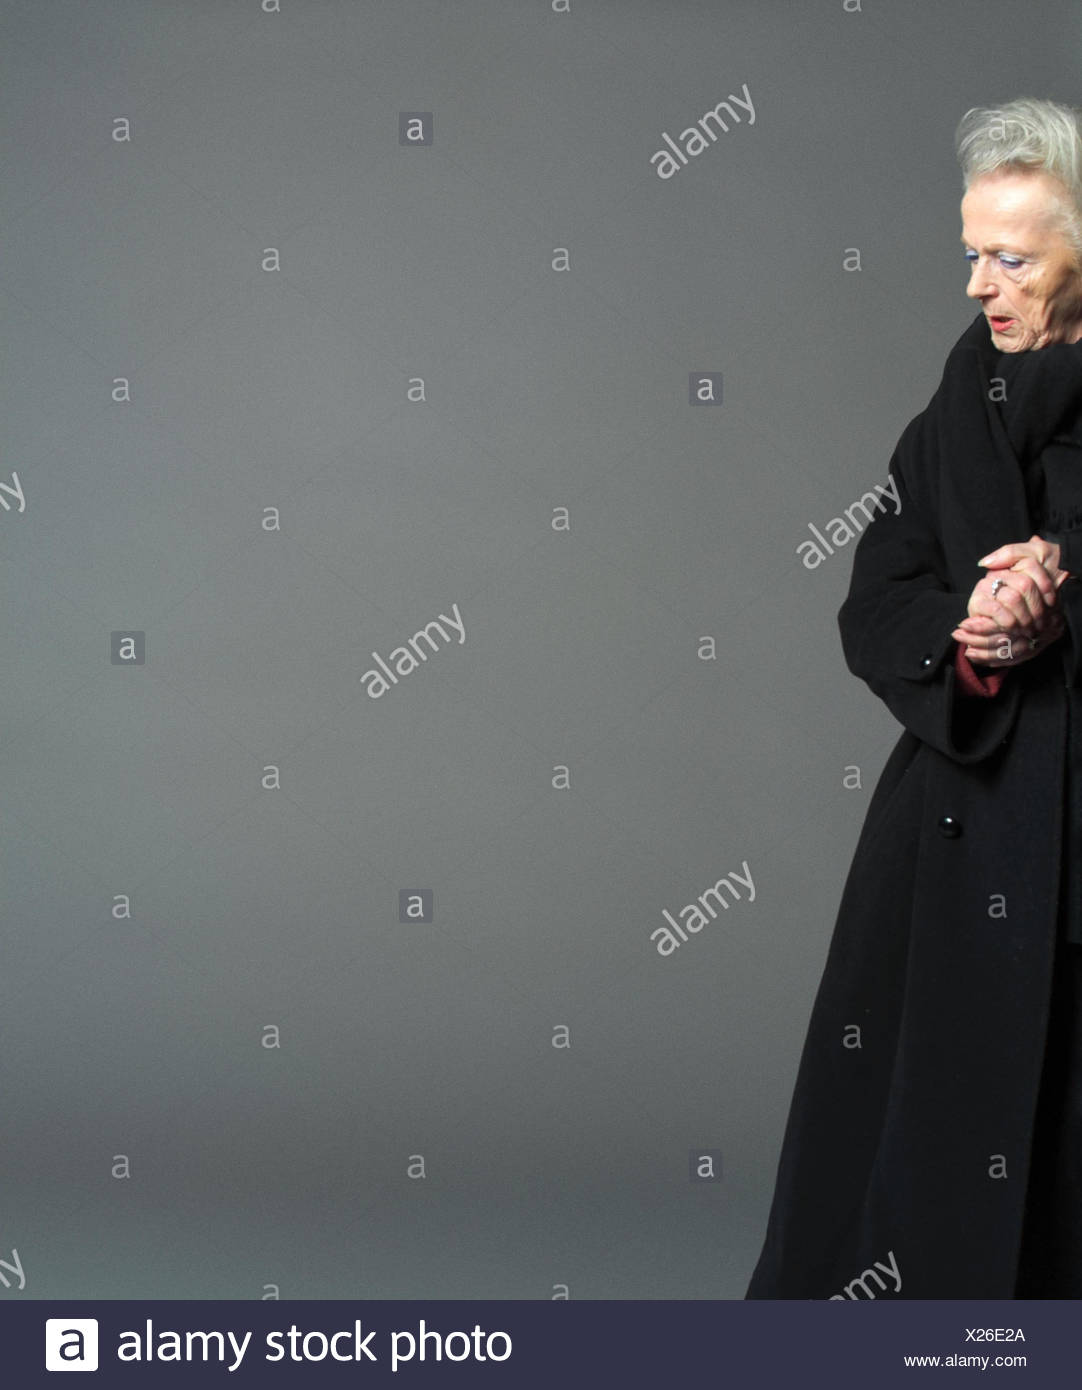 Senior, winter clothes, seriously, surprises, detail, very close, studio, pensioner, woman, old, grey-haired, casing, surprise, dismays, dismay, grief, dealts with, worried, stand, side view - Stock Image